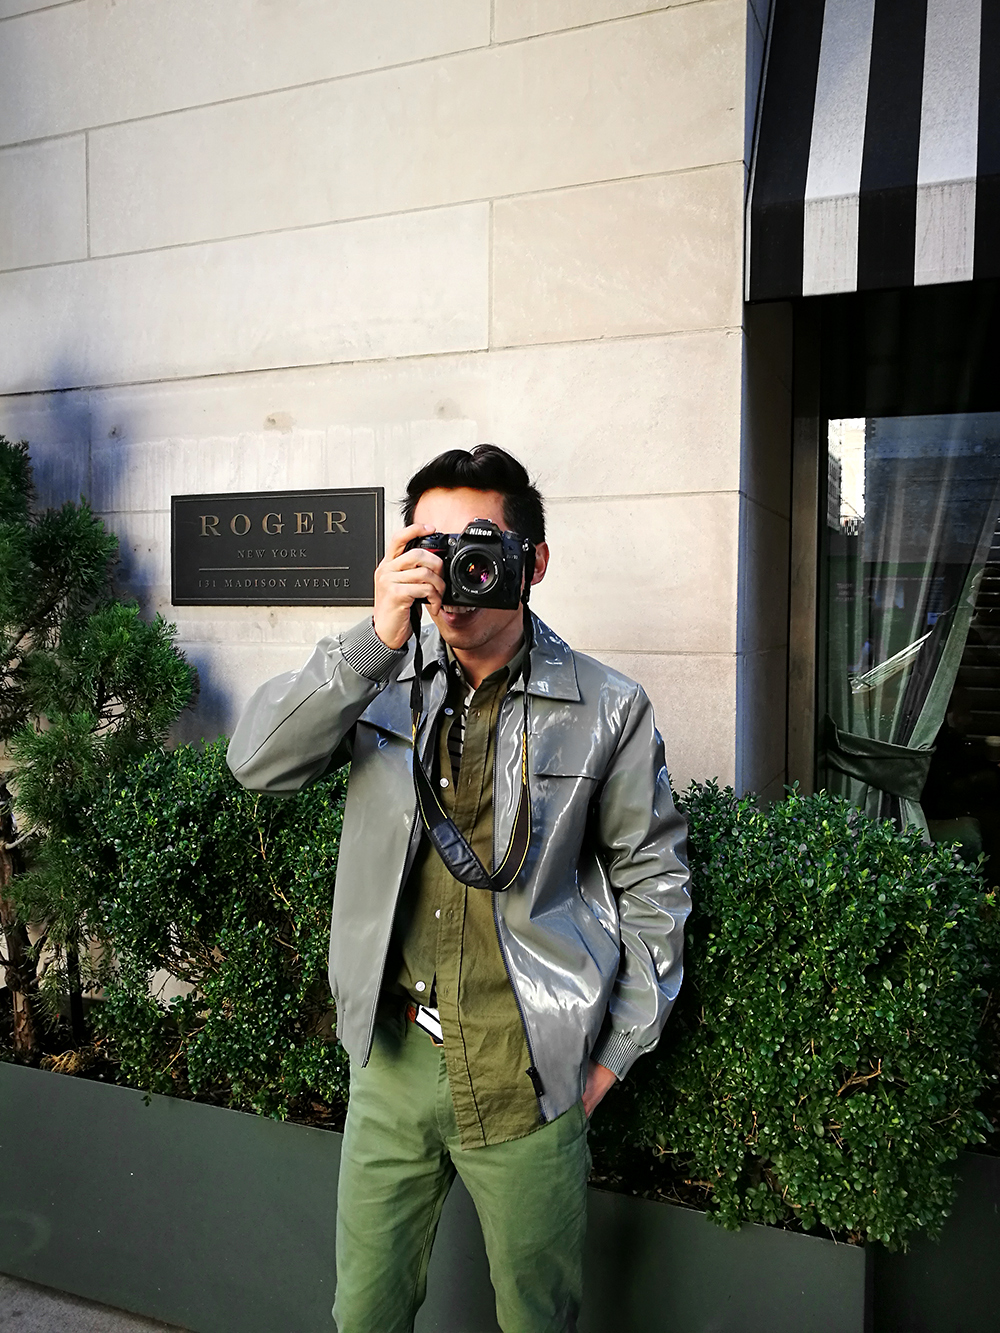 The Roger boutique hotel exterior, New York Hotel, COS mens bomber jacket, Grana mens green shirt, mens green chinos